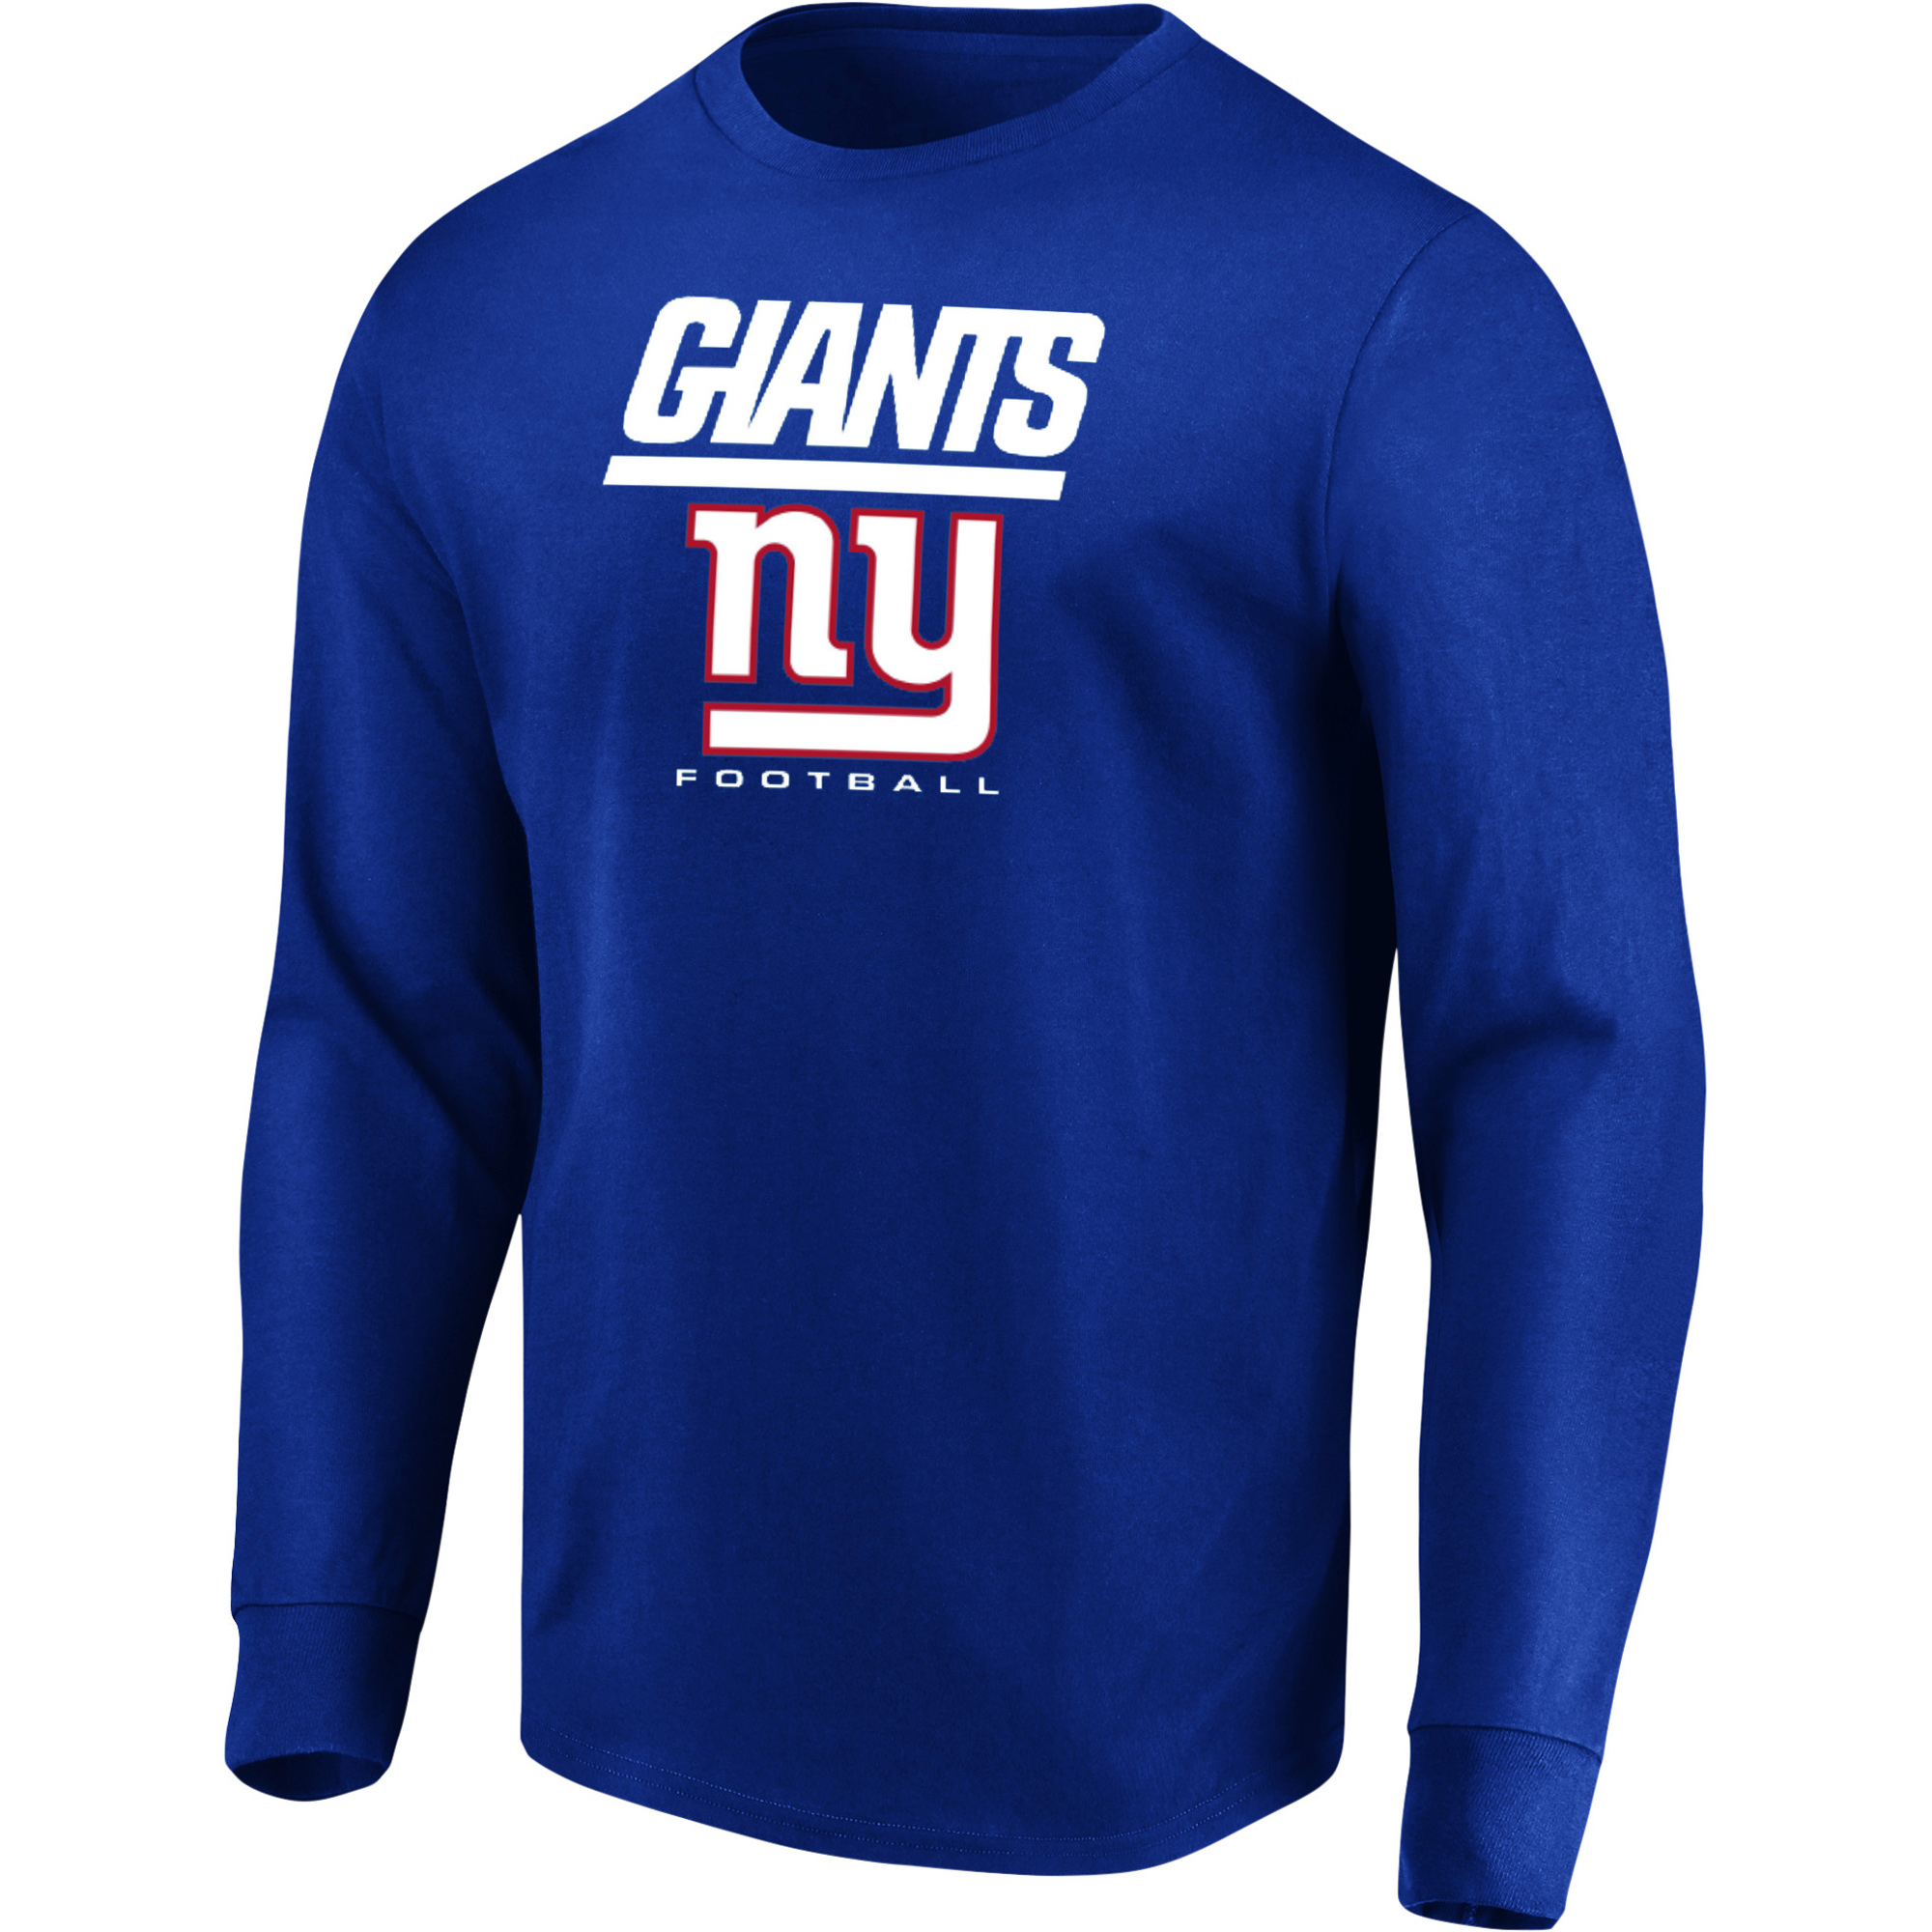 Men's Majestic Royal New York Giants Our Team Long Sleeve T-Shirt